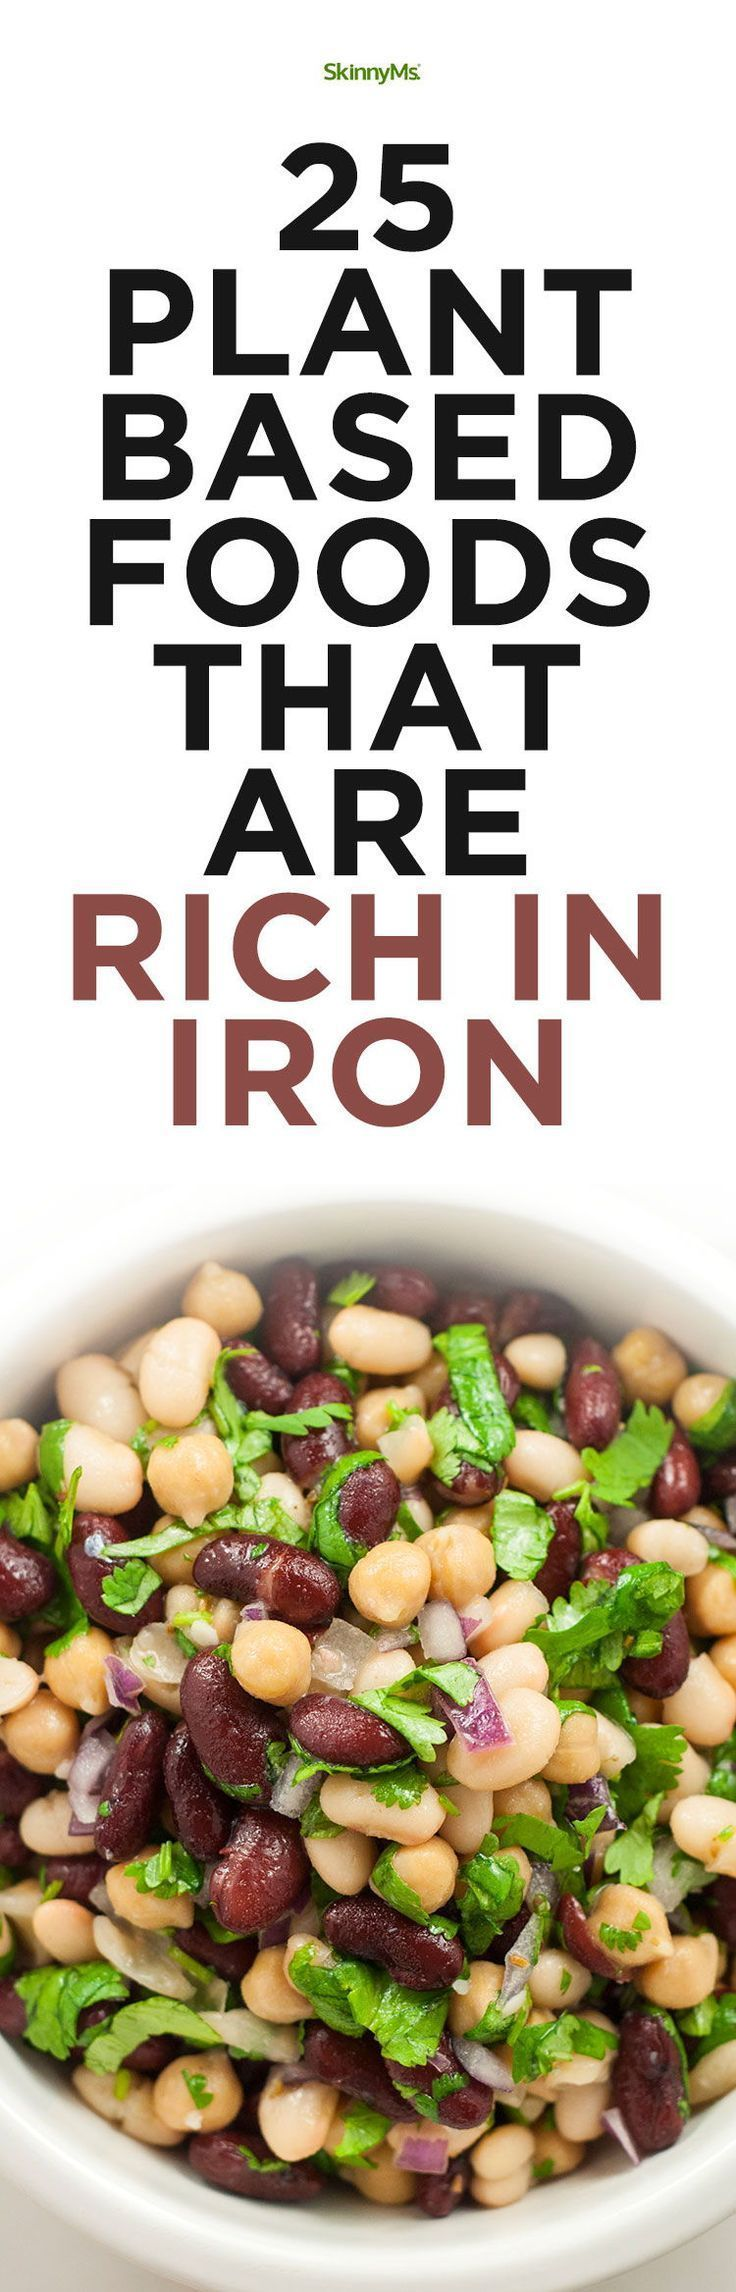 25 PlantBased Foods That Are Rich In Iron Vegan recipes